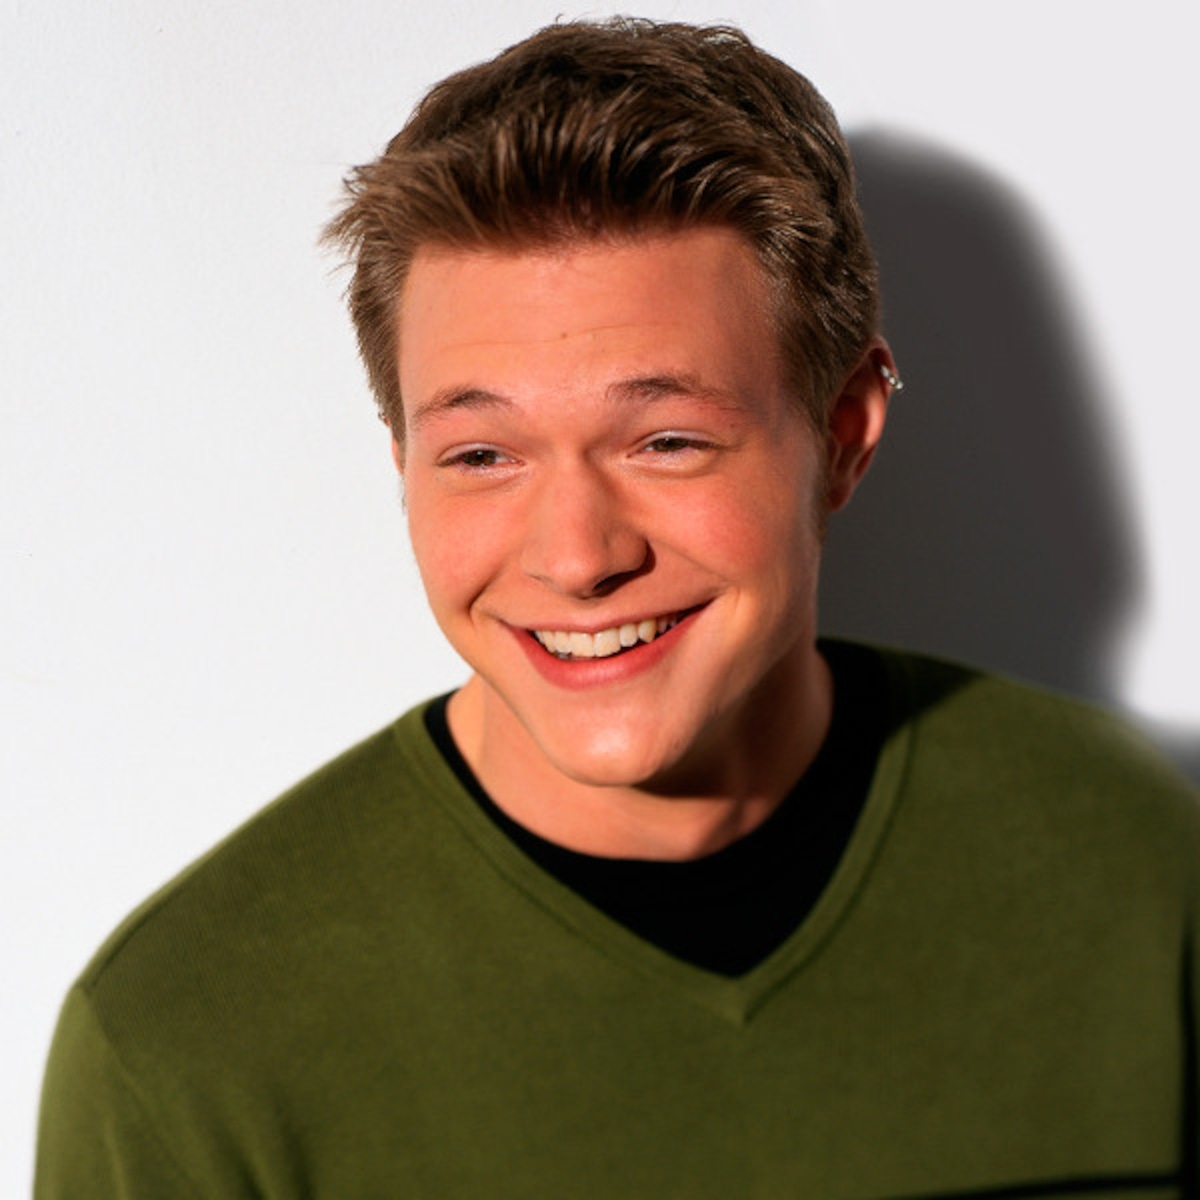 Sabrina The Teenage Witch S Nate Richert Reveals New Day Job E Online The actor starred as harvey kinkle on 'sabrina' from 1996 to 2003. nate richert reveals new day job